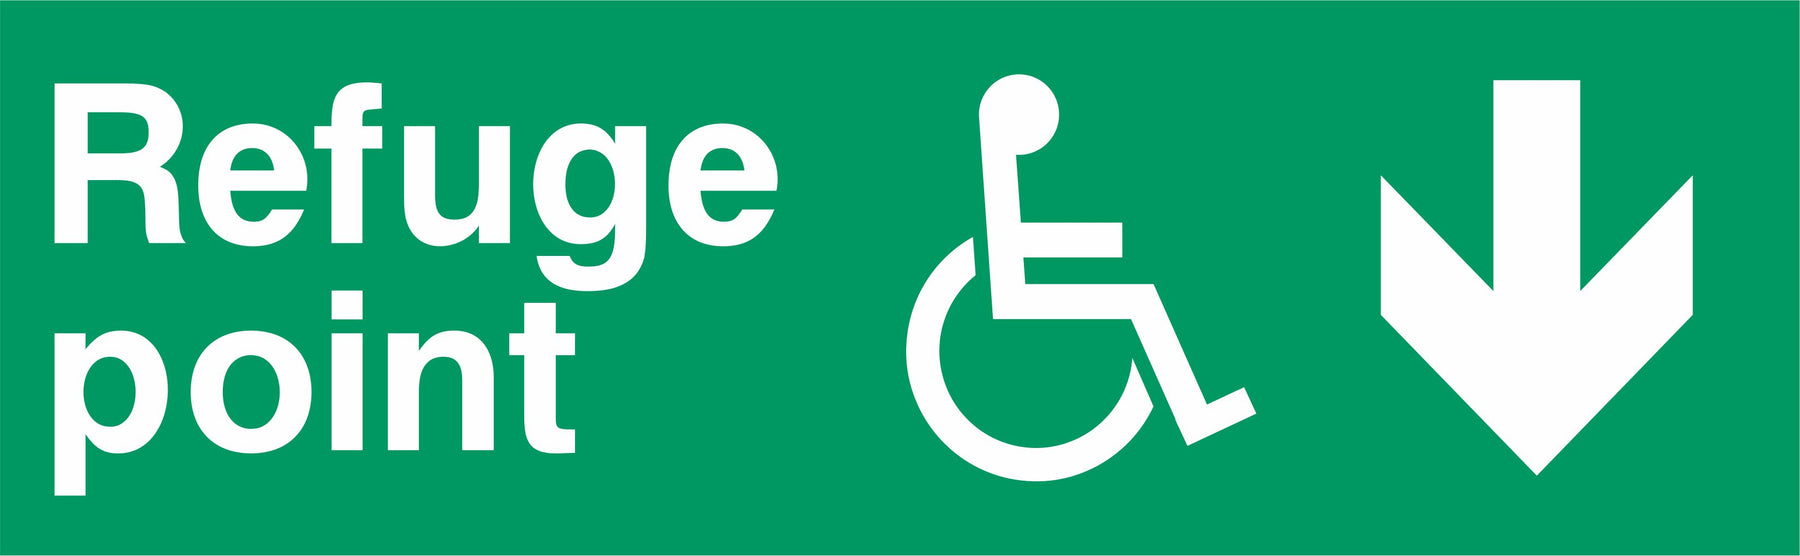 Refuge point - Disabled symbol - Down Arrow